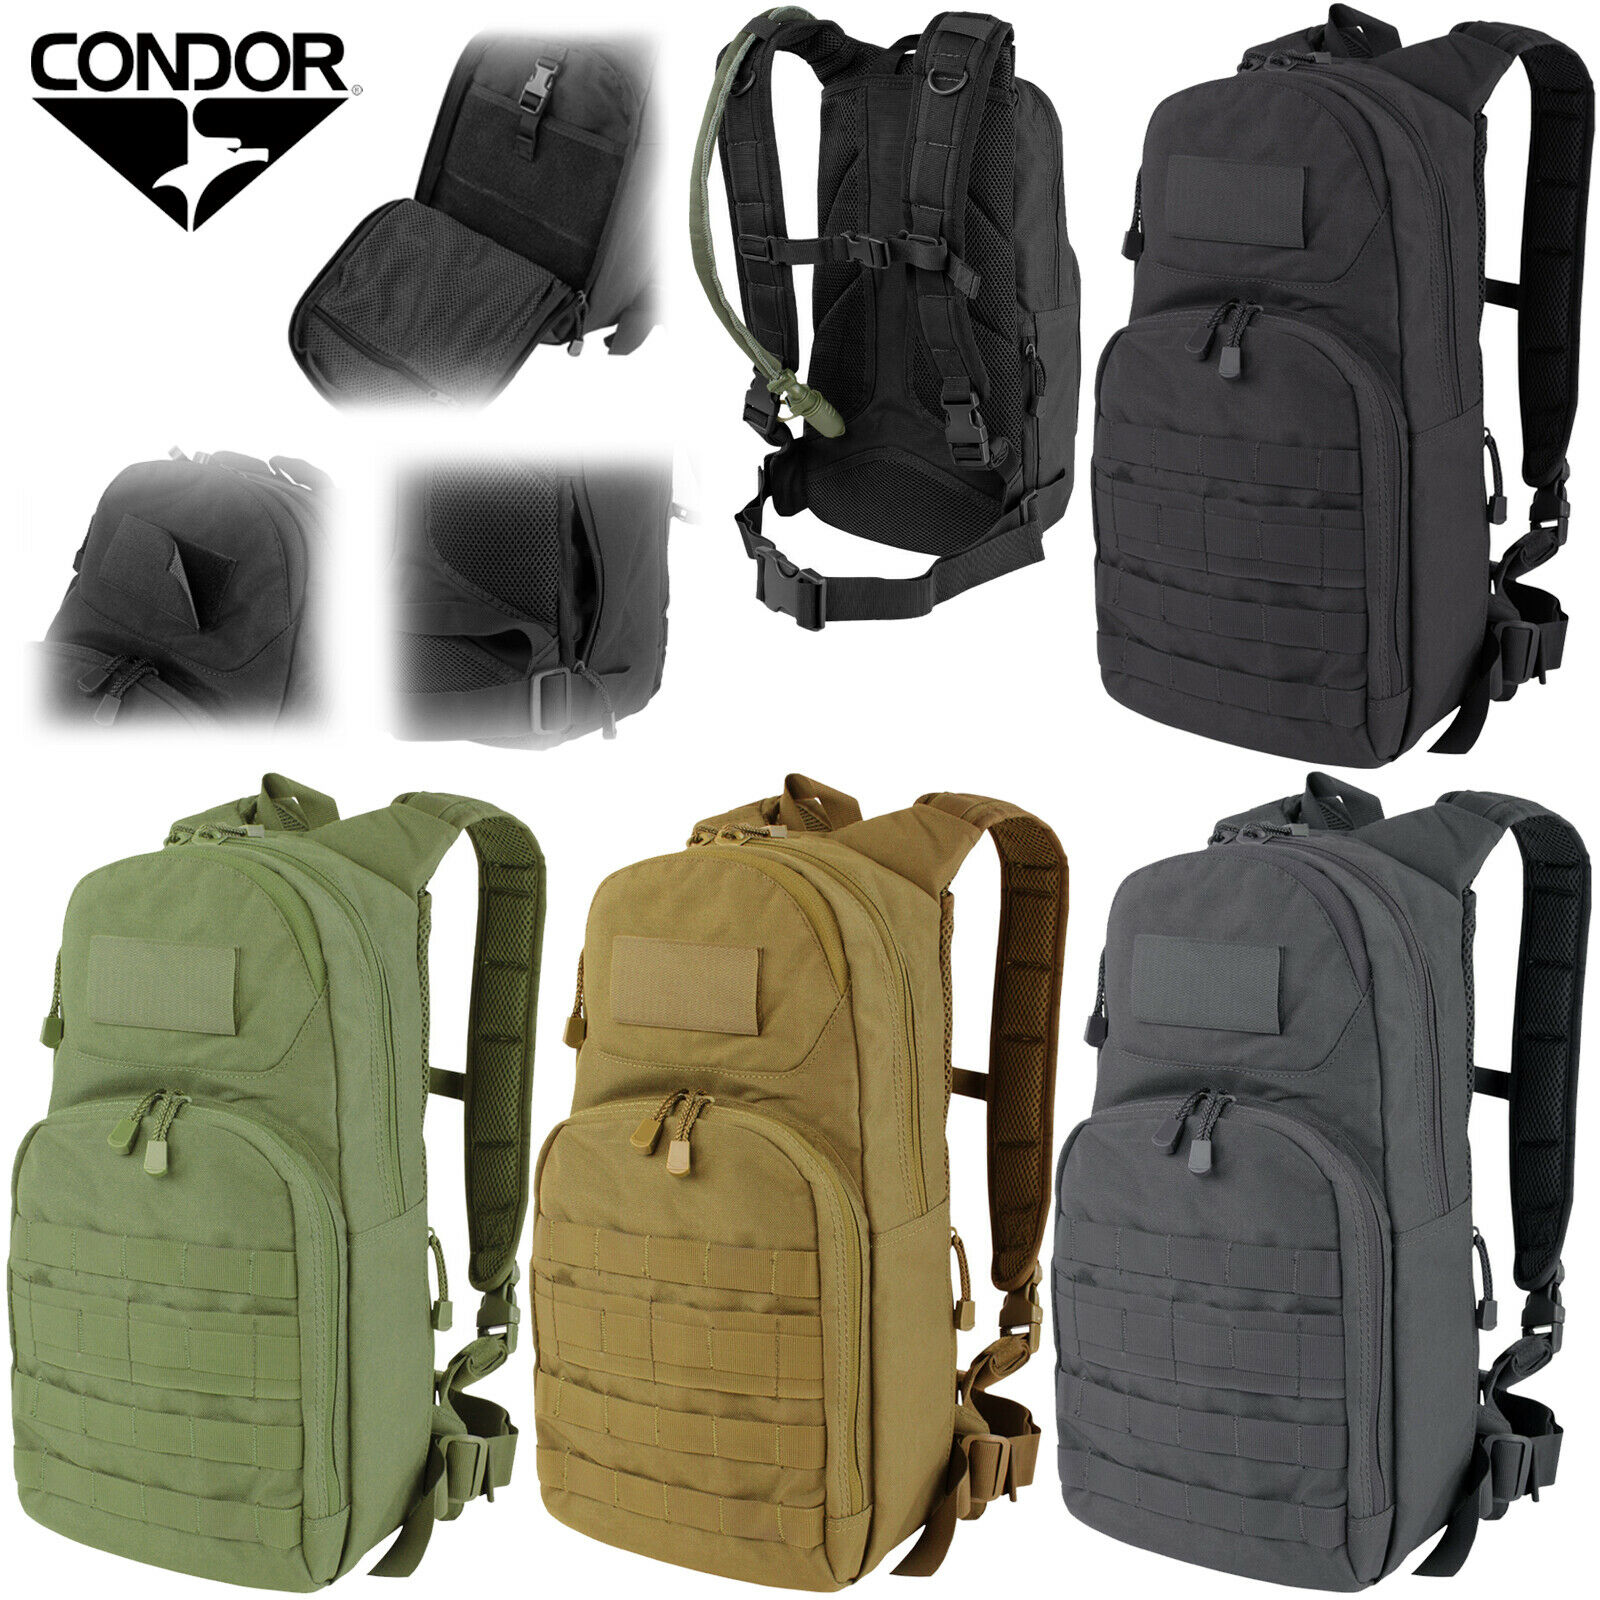 Condor Tactical MOLLE PALS Mesh Padded Fuel Hydration Carrier Backpack Pack 165